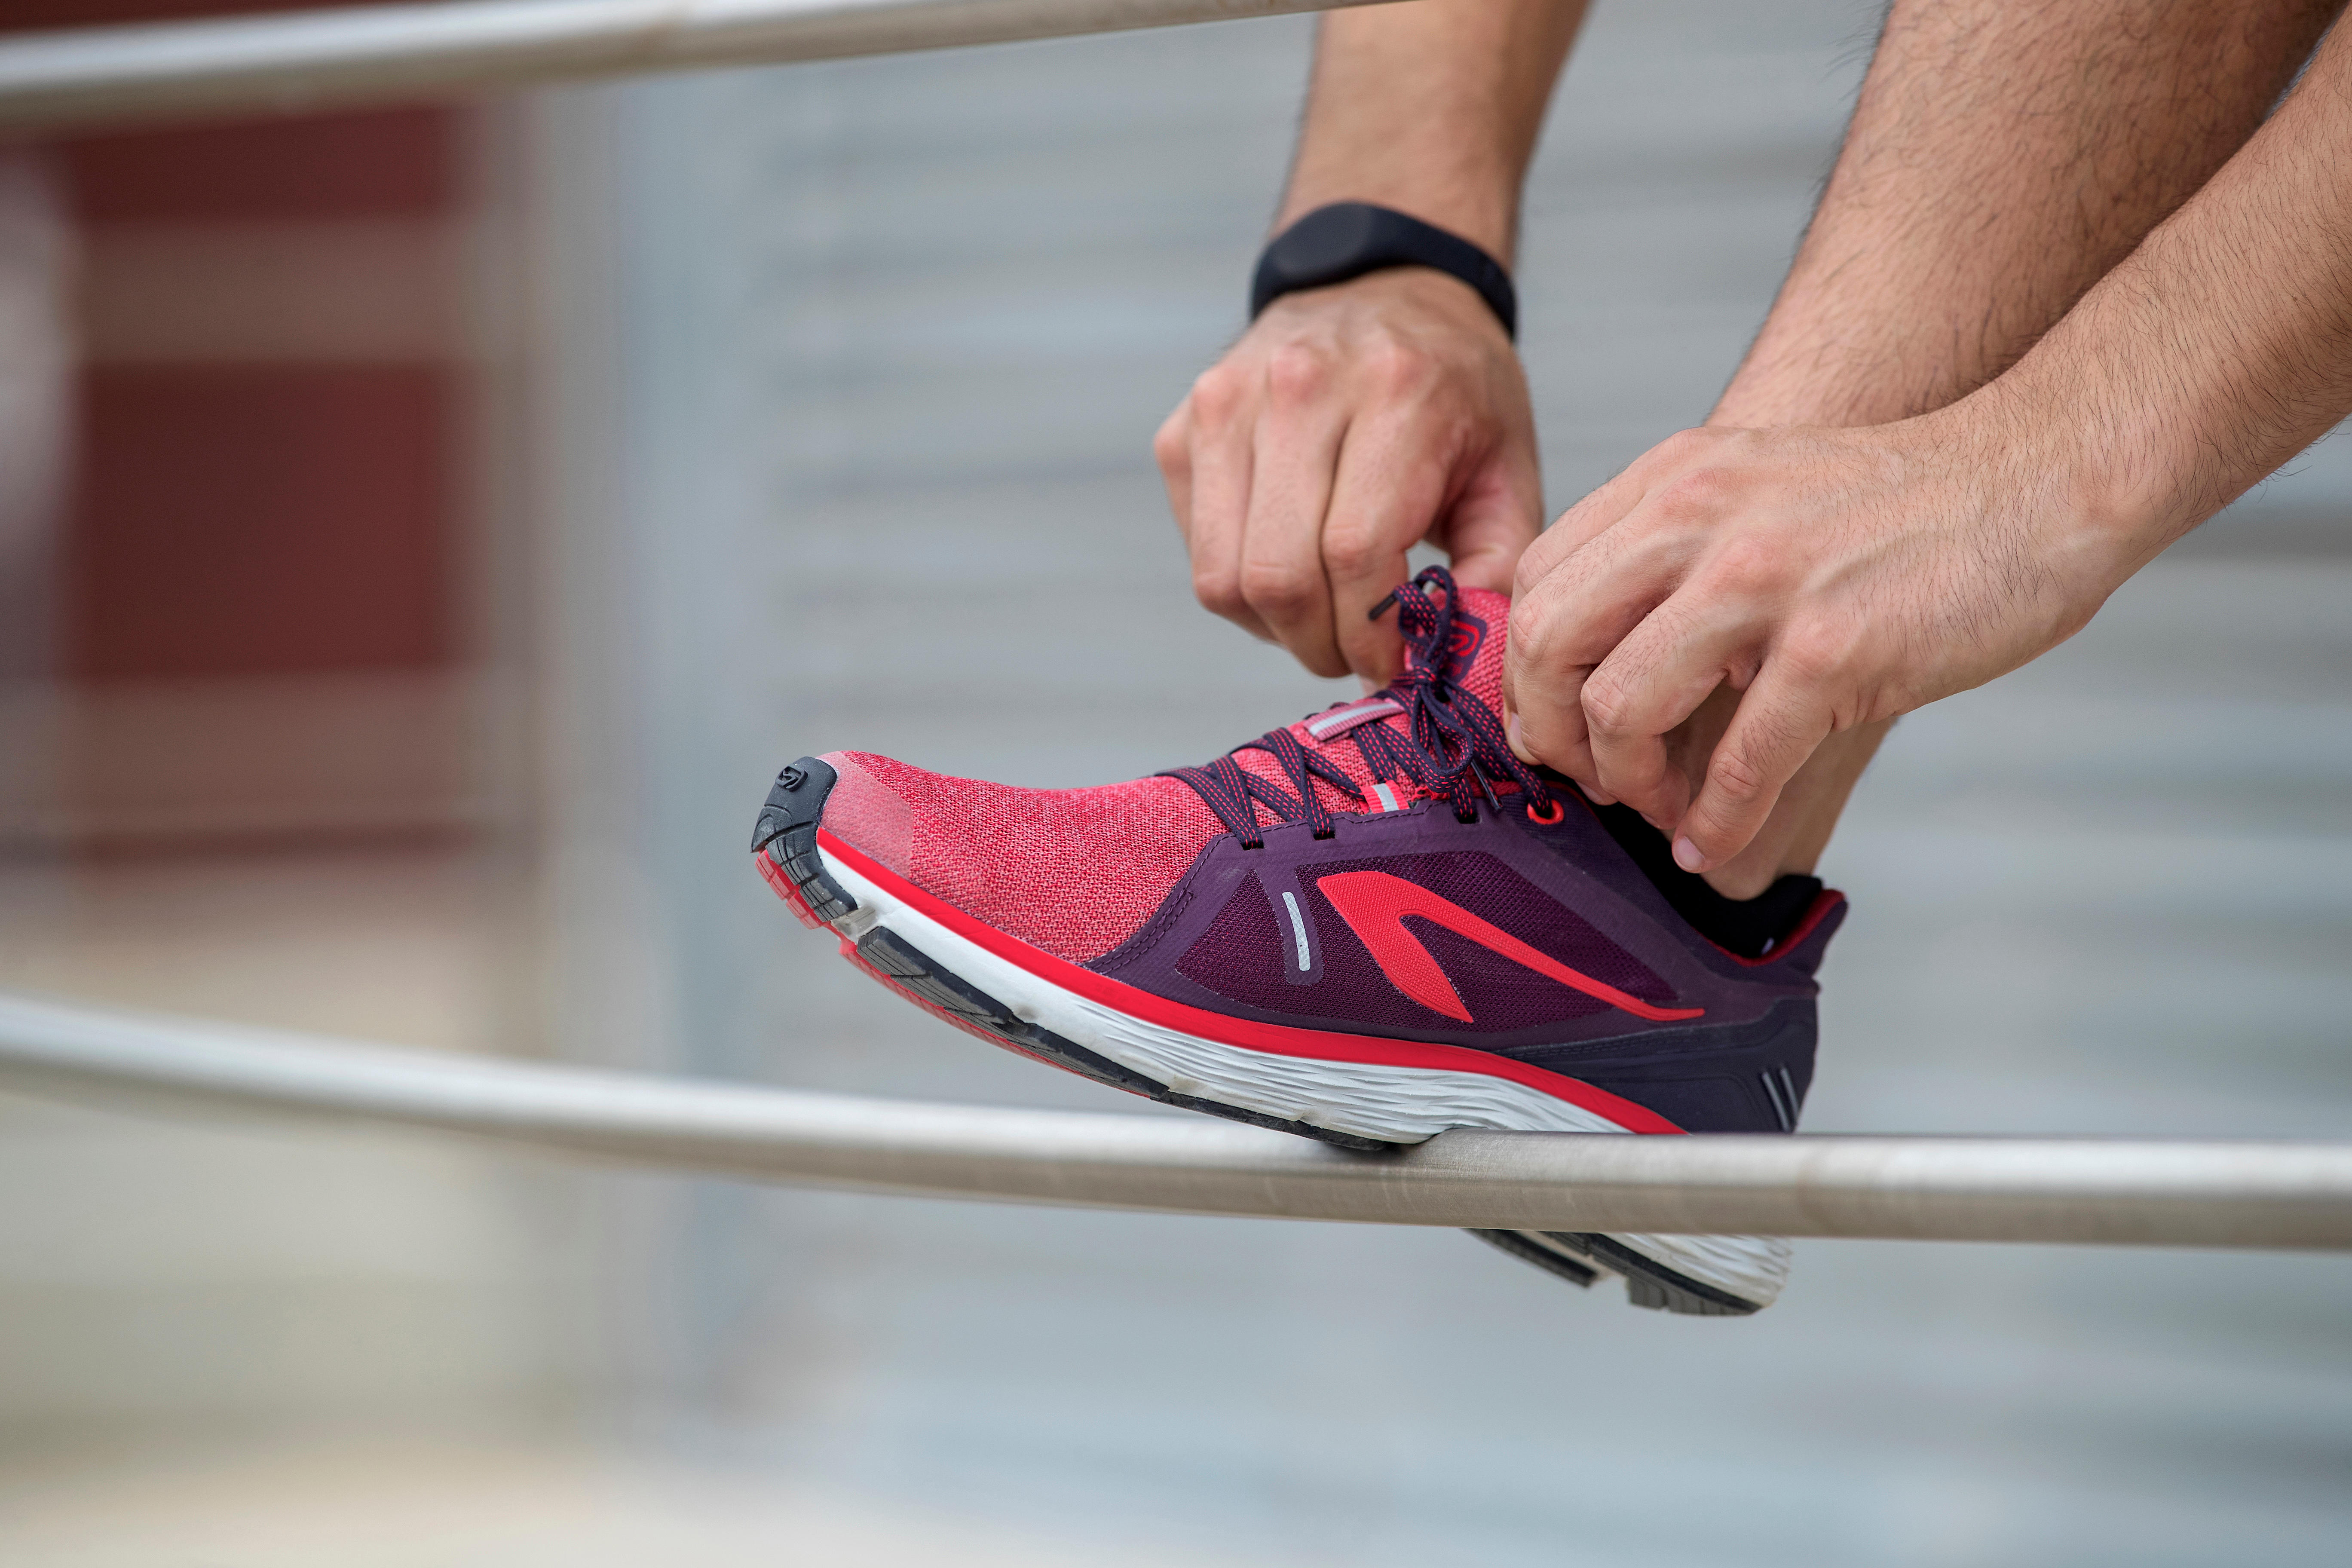 7 Tips To Make Your Running Shoes Last Longer